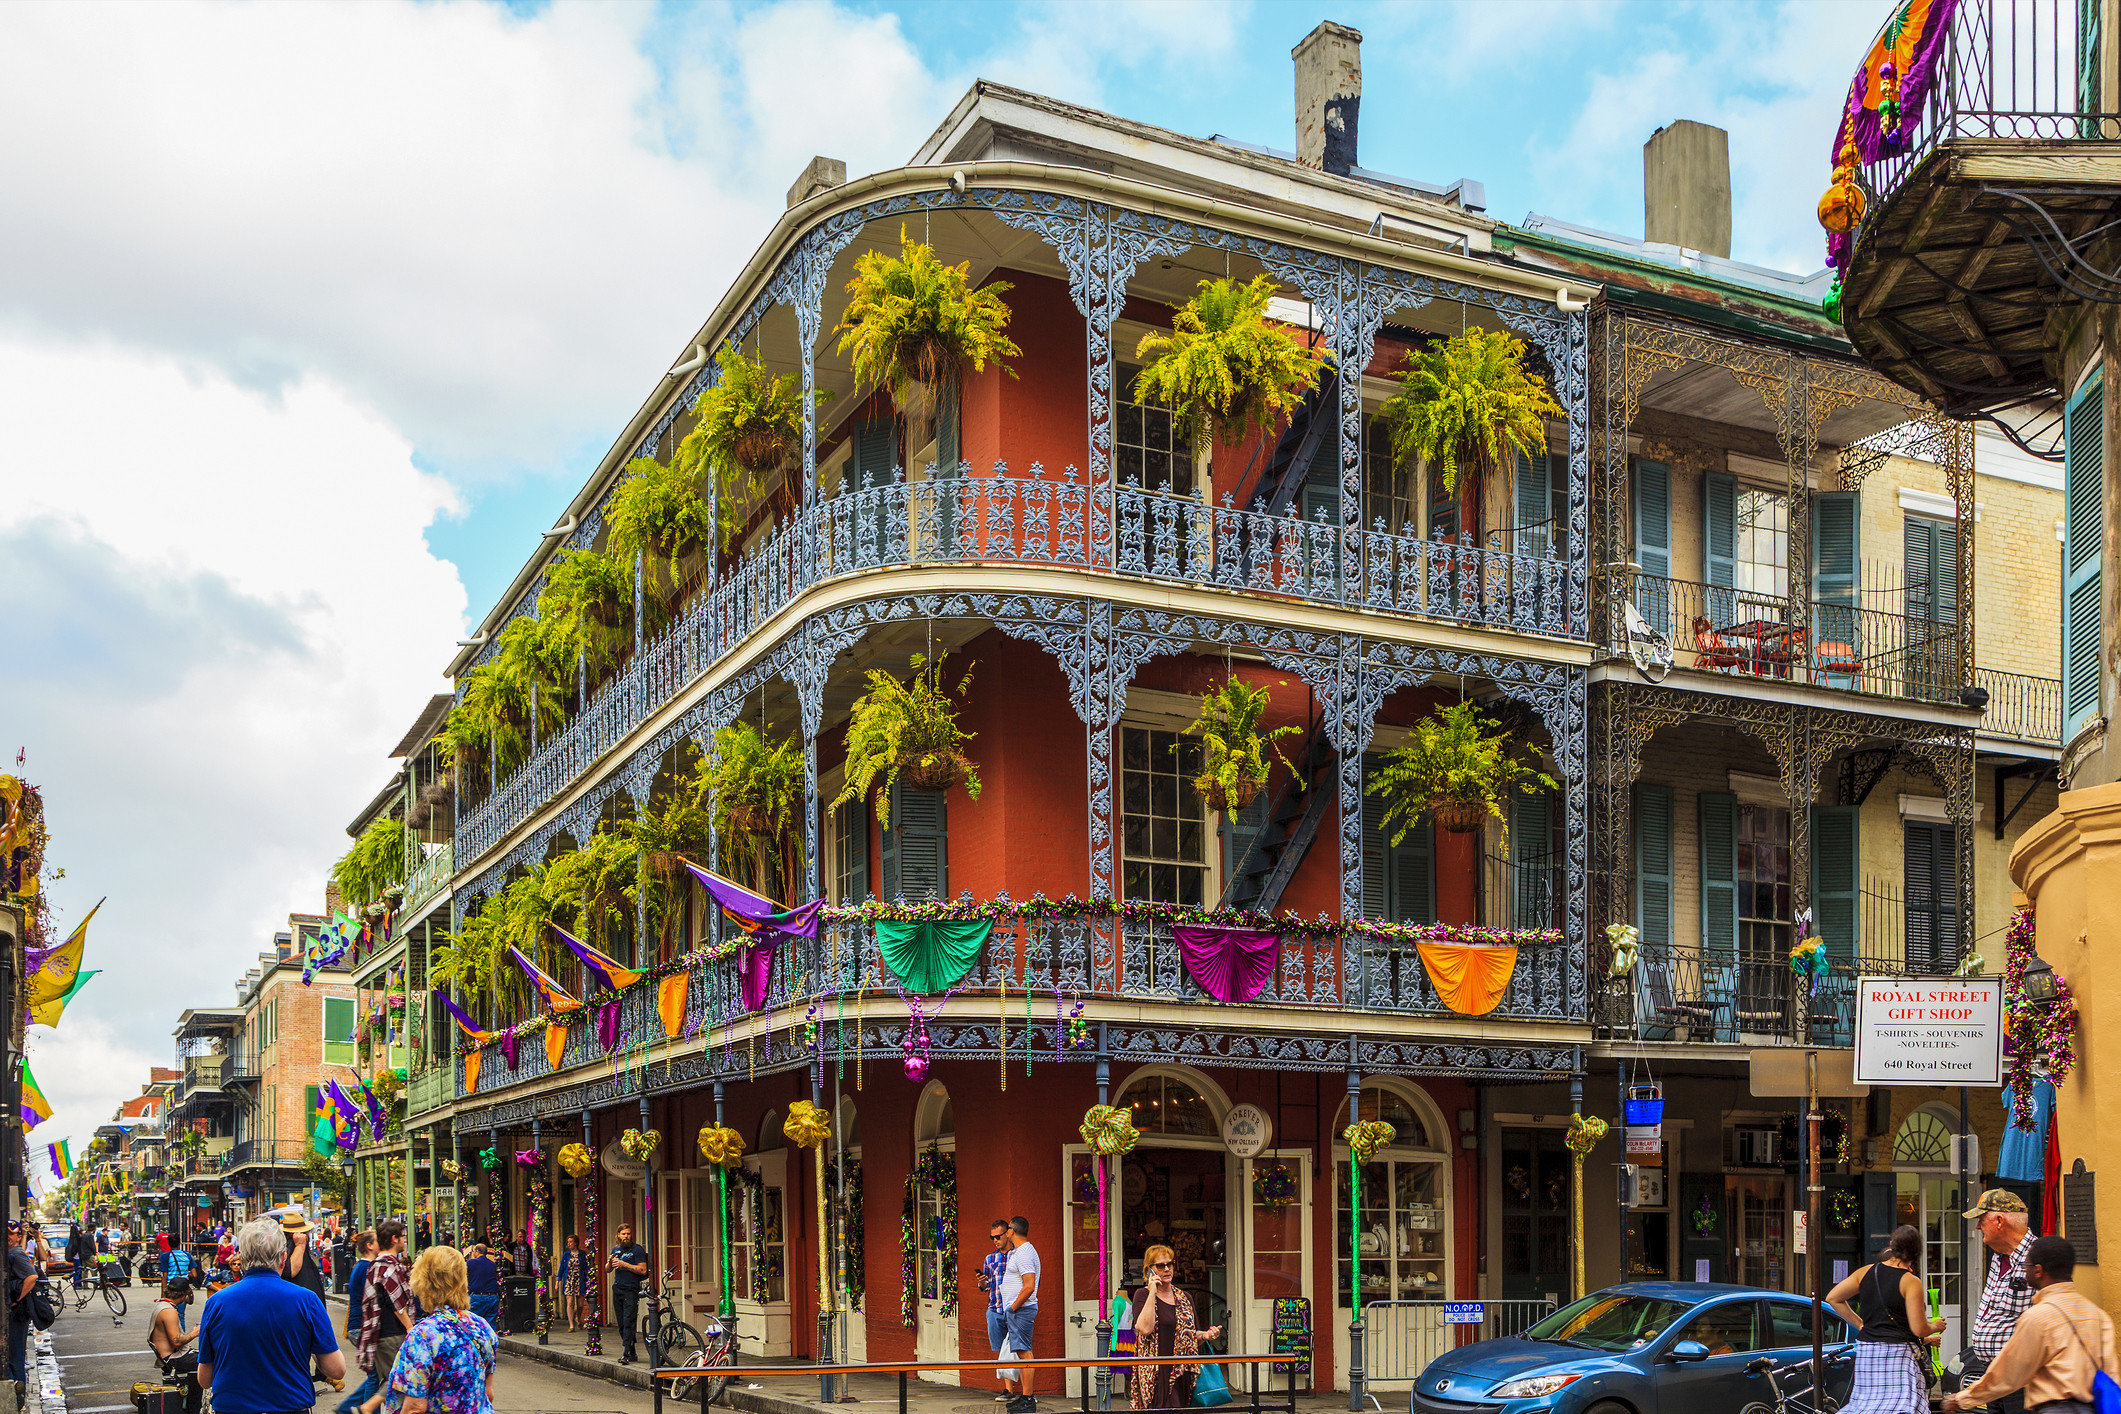 Girls Getaways New Orleans Travel Tips Trip Ideas Weekend Getaways Winter outdoor sky building landmark Town City mixed use neighbourhood street metropolis facade metropolitan area tourism people tourist attraction house tree crowd